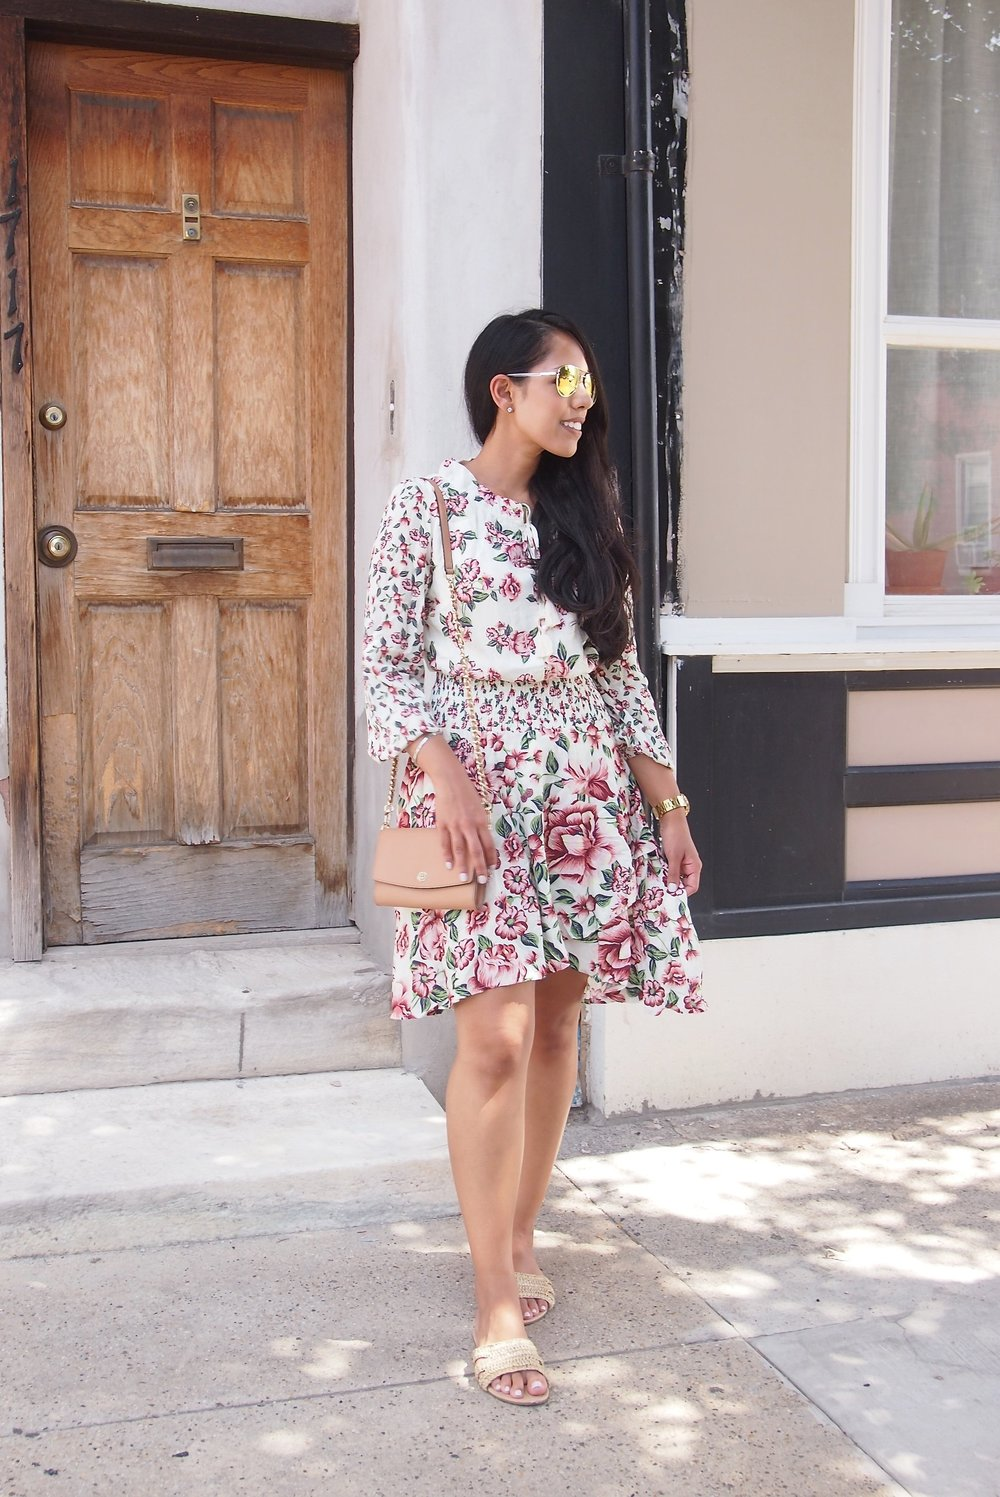 10-Floral-Dresses-to-Wear-This-Summer.JPG